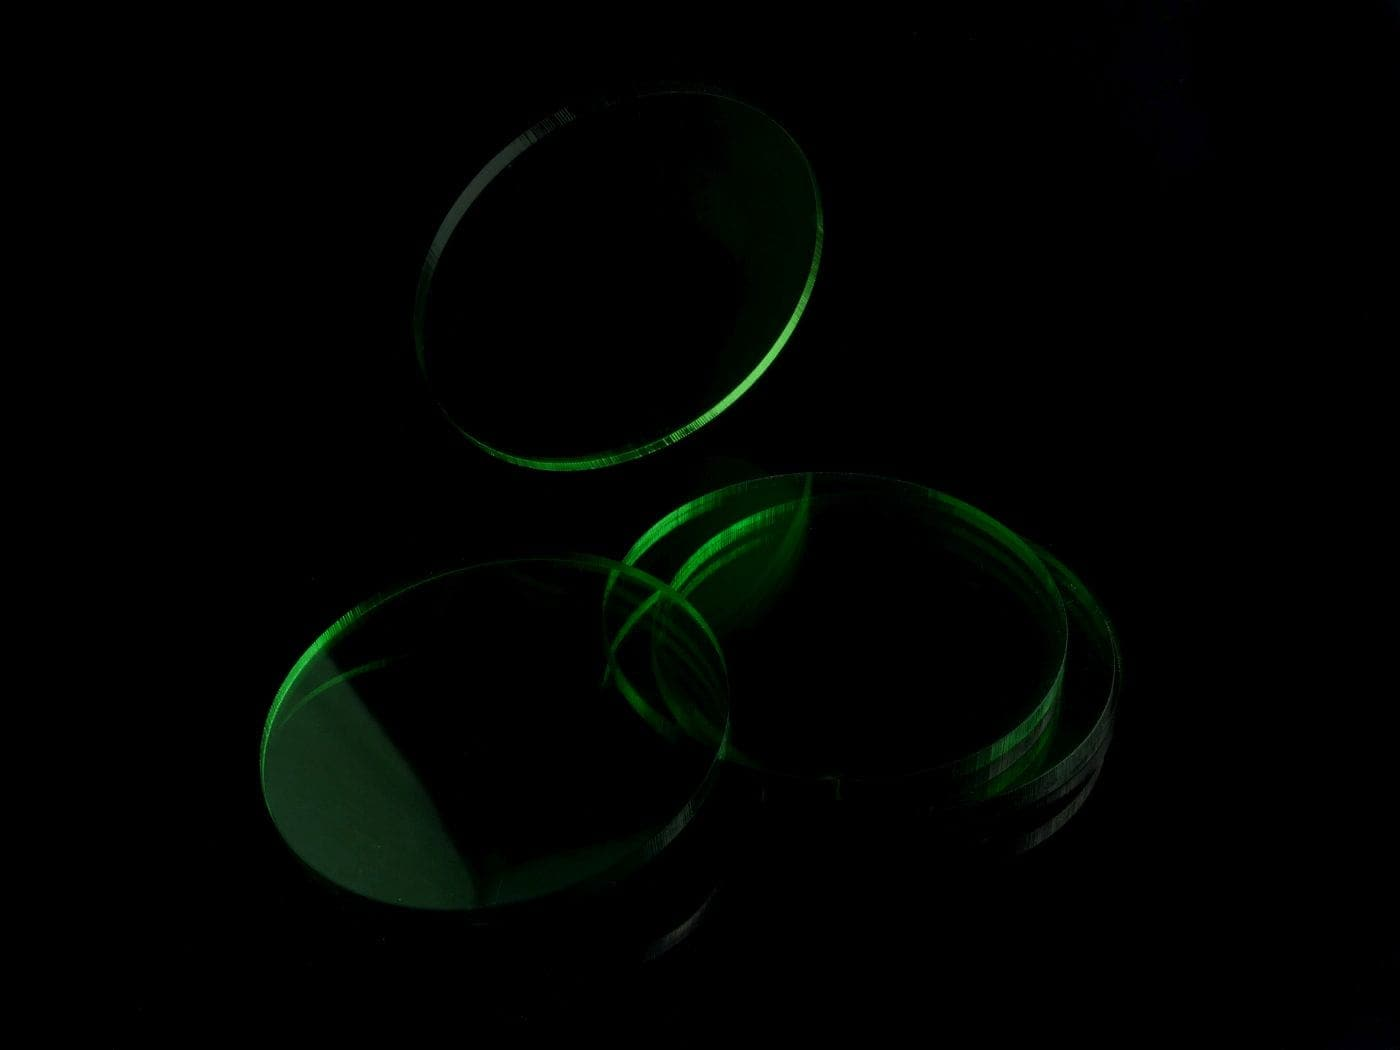 Acrylic miniature bases (5 pcs), round, clear, green, 55 x 3 mm - 2